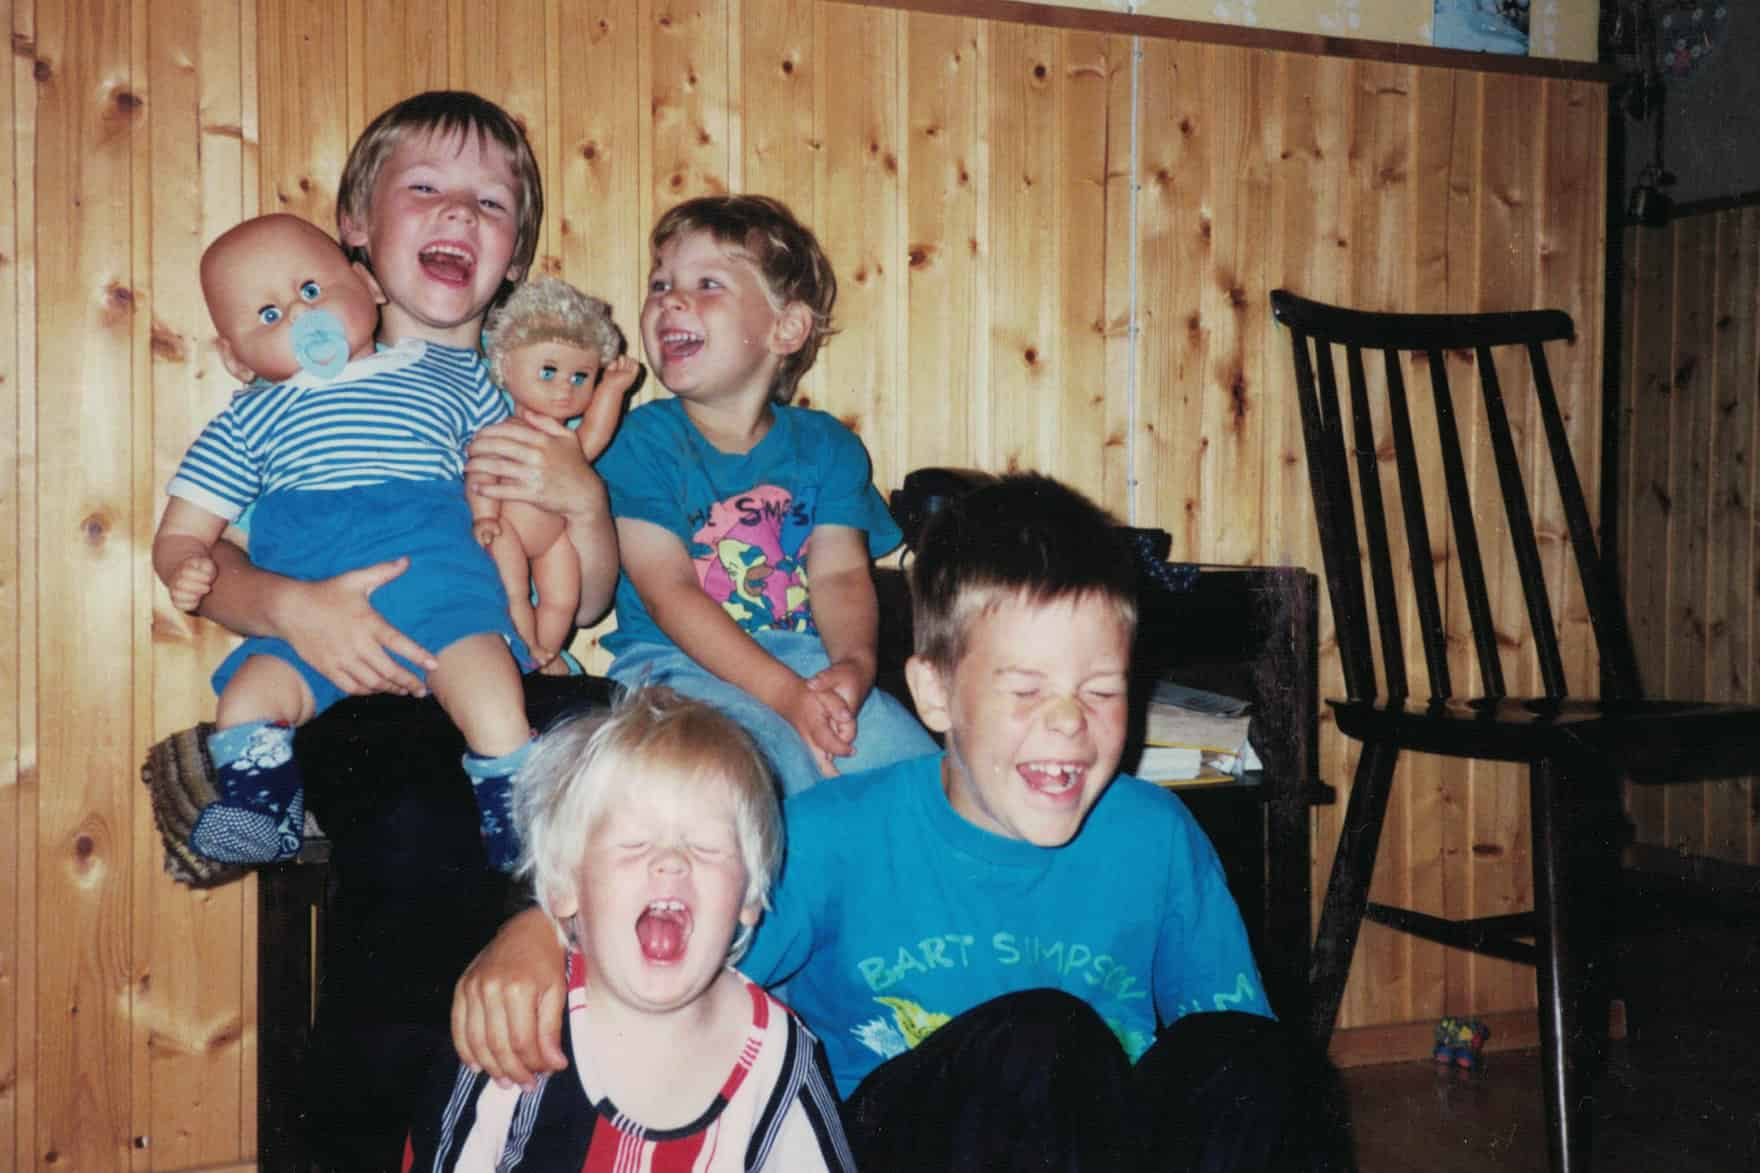 Carlos and siblings laughing hysterically, 1992.